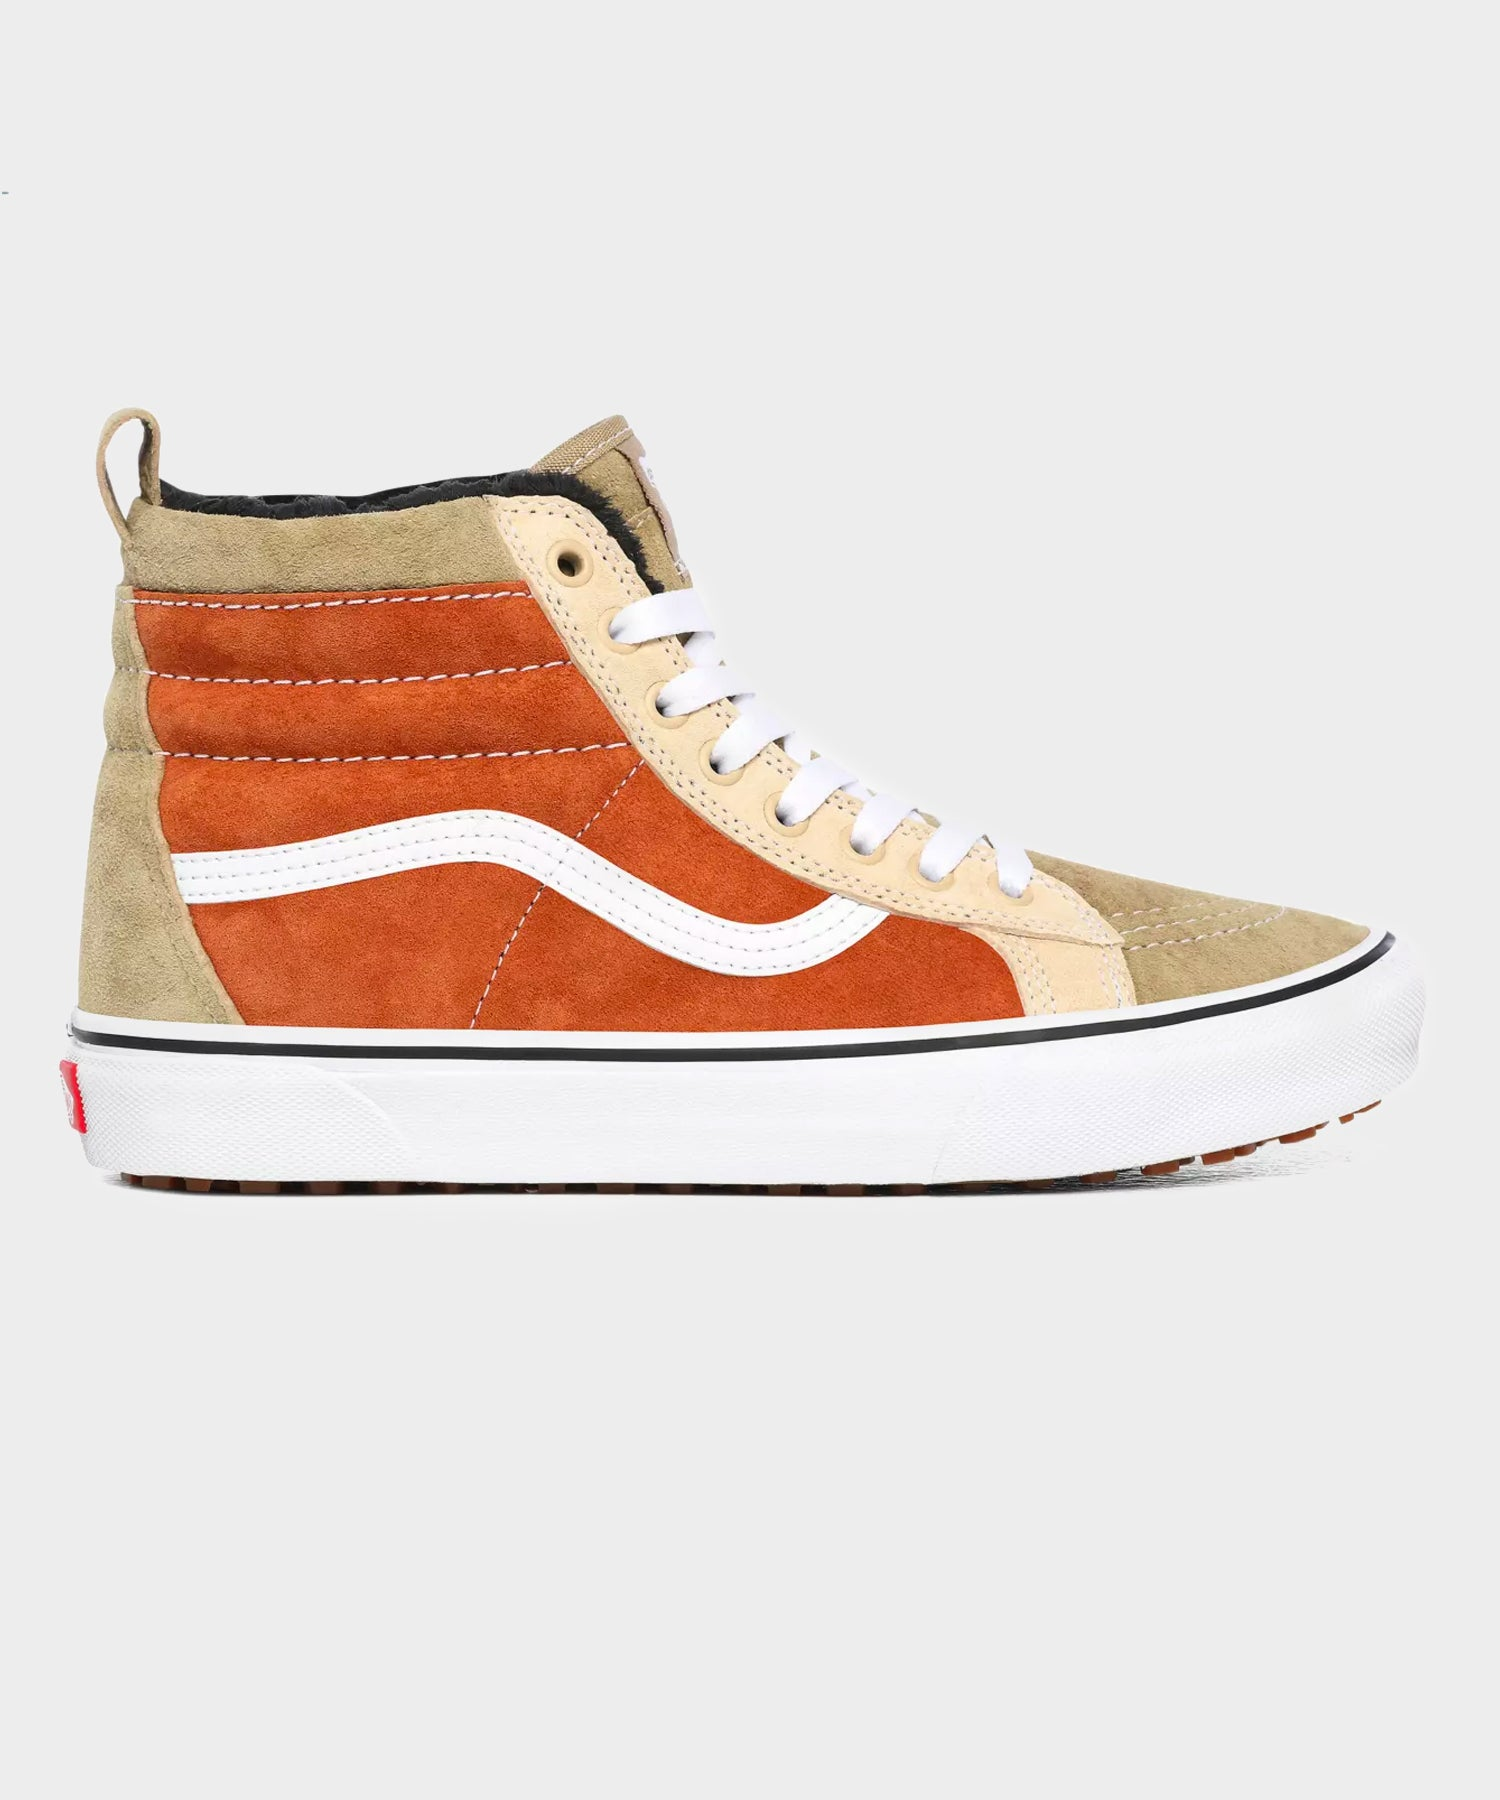 Vans Sk8-Hi MTE in Orange & Tan